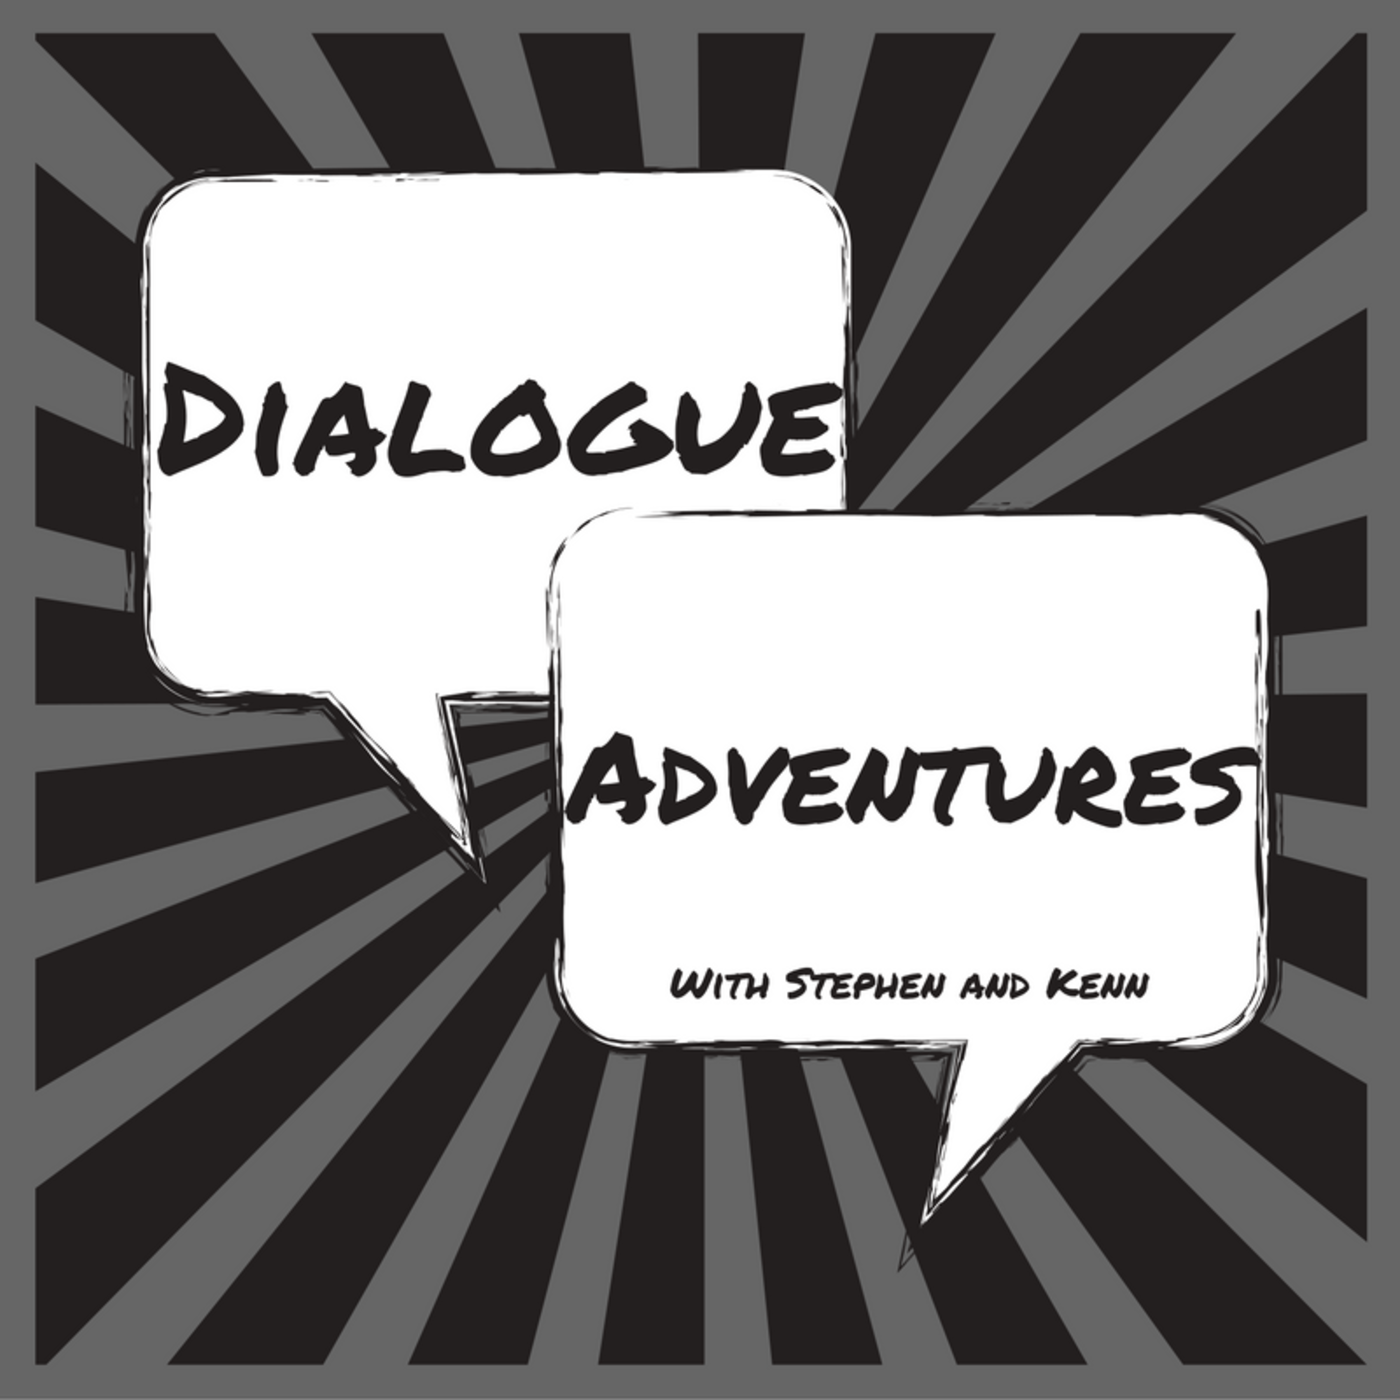 The Dialogue Adventures